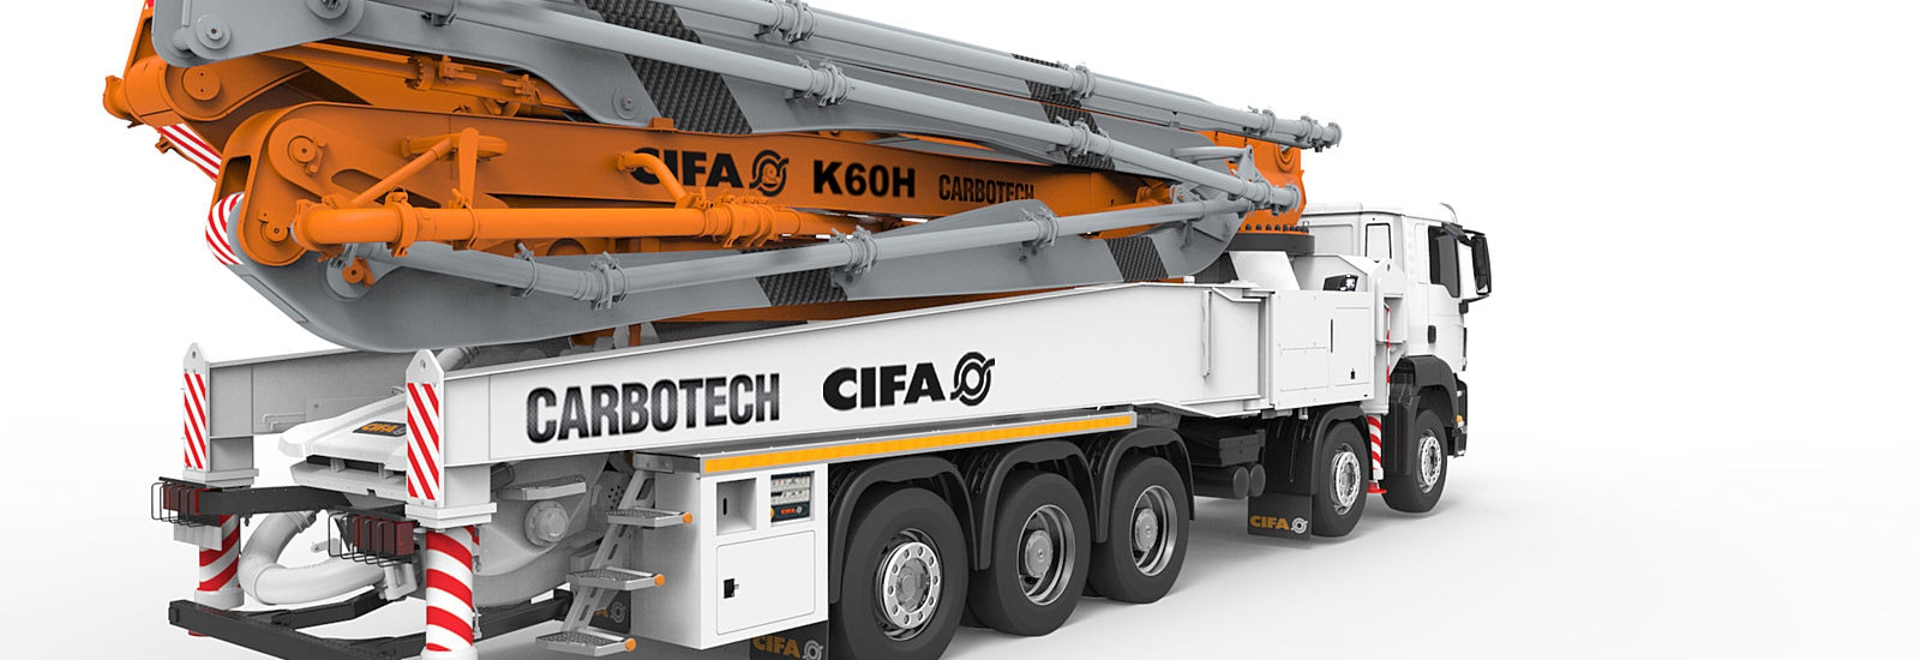 CIFA Carbotech: two new arrivals